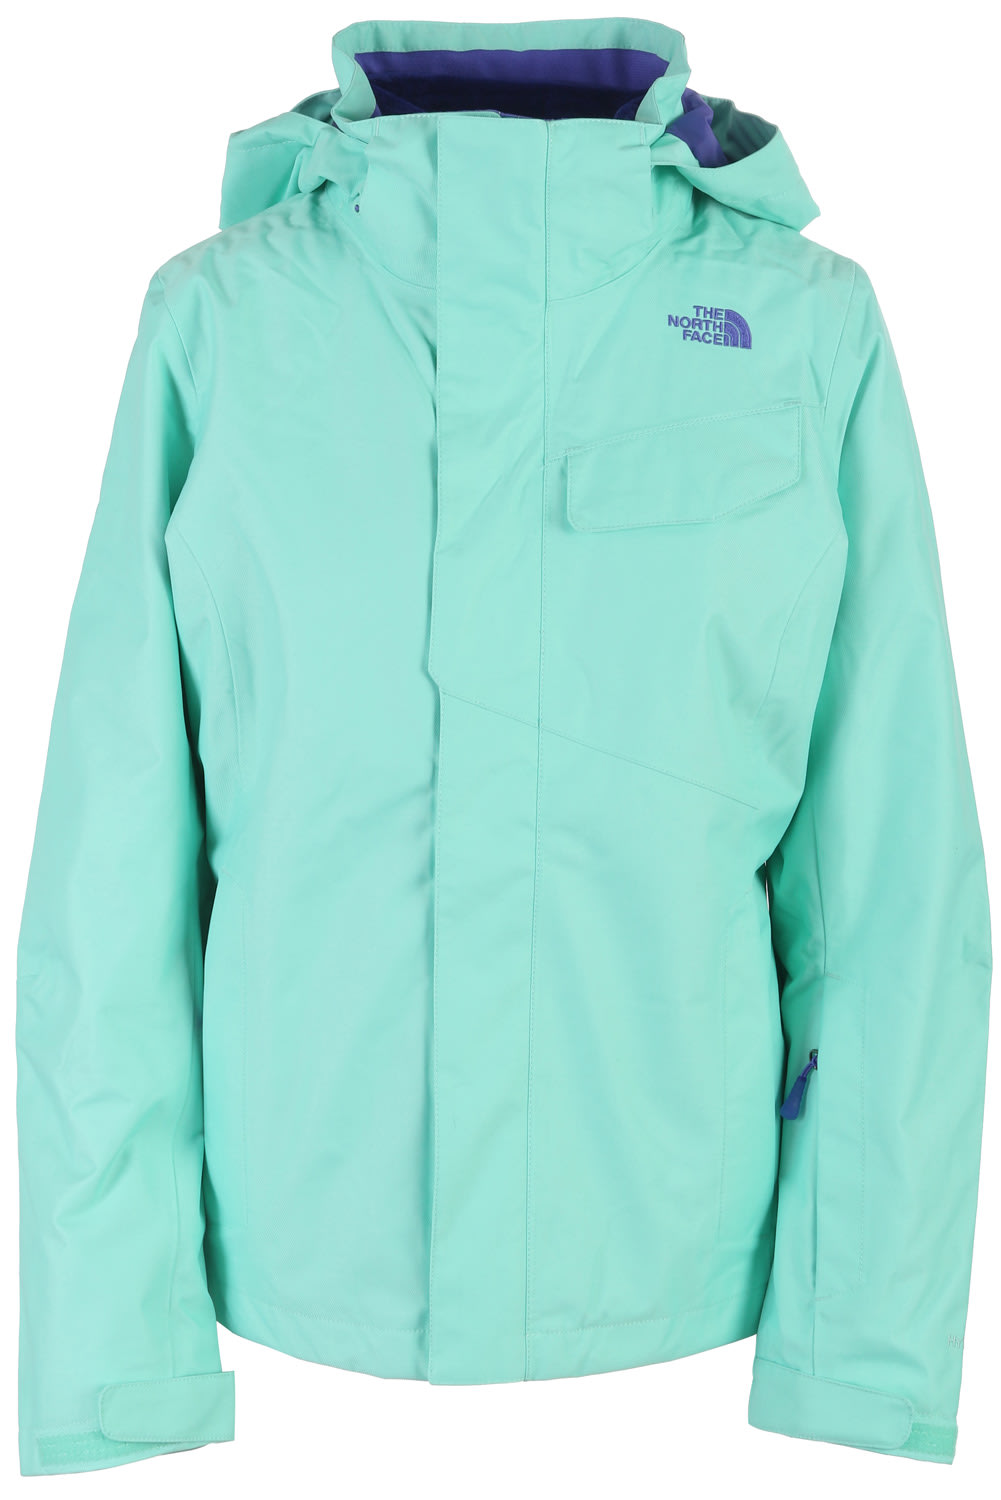 Where to buy north face jackets in singapore